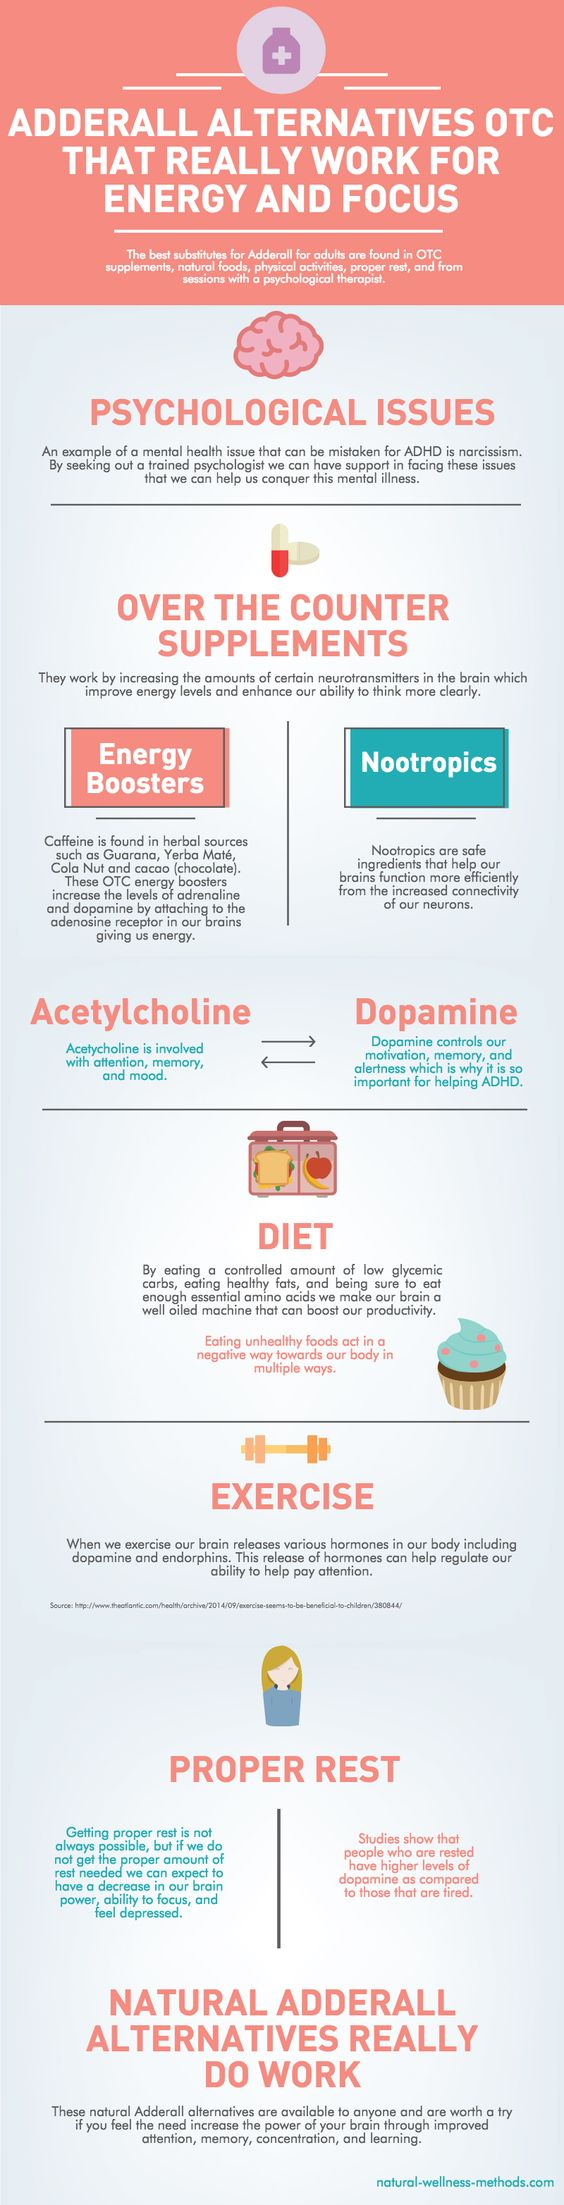 The following infographic shows that the best non-prescription stimulant pills for adults are found in OTC supplements, natural foods, physical activities, proper rest, and from sessions with a psychological therapist.